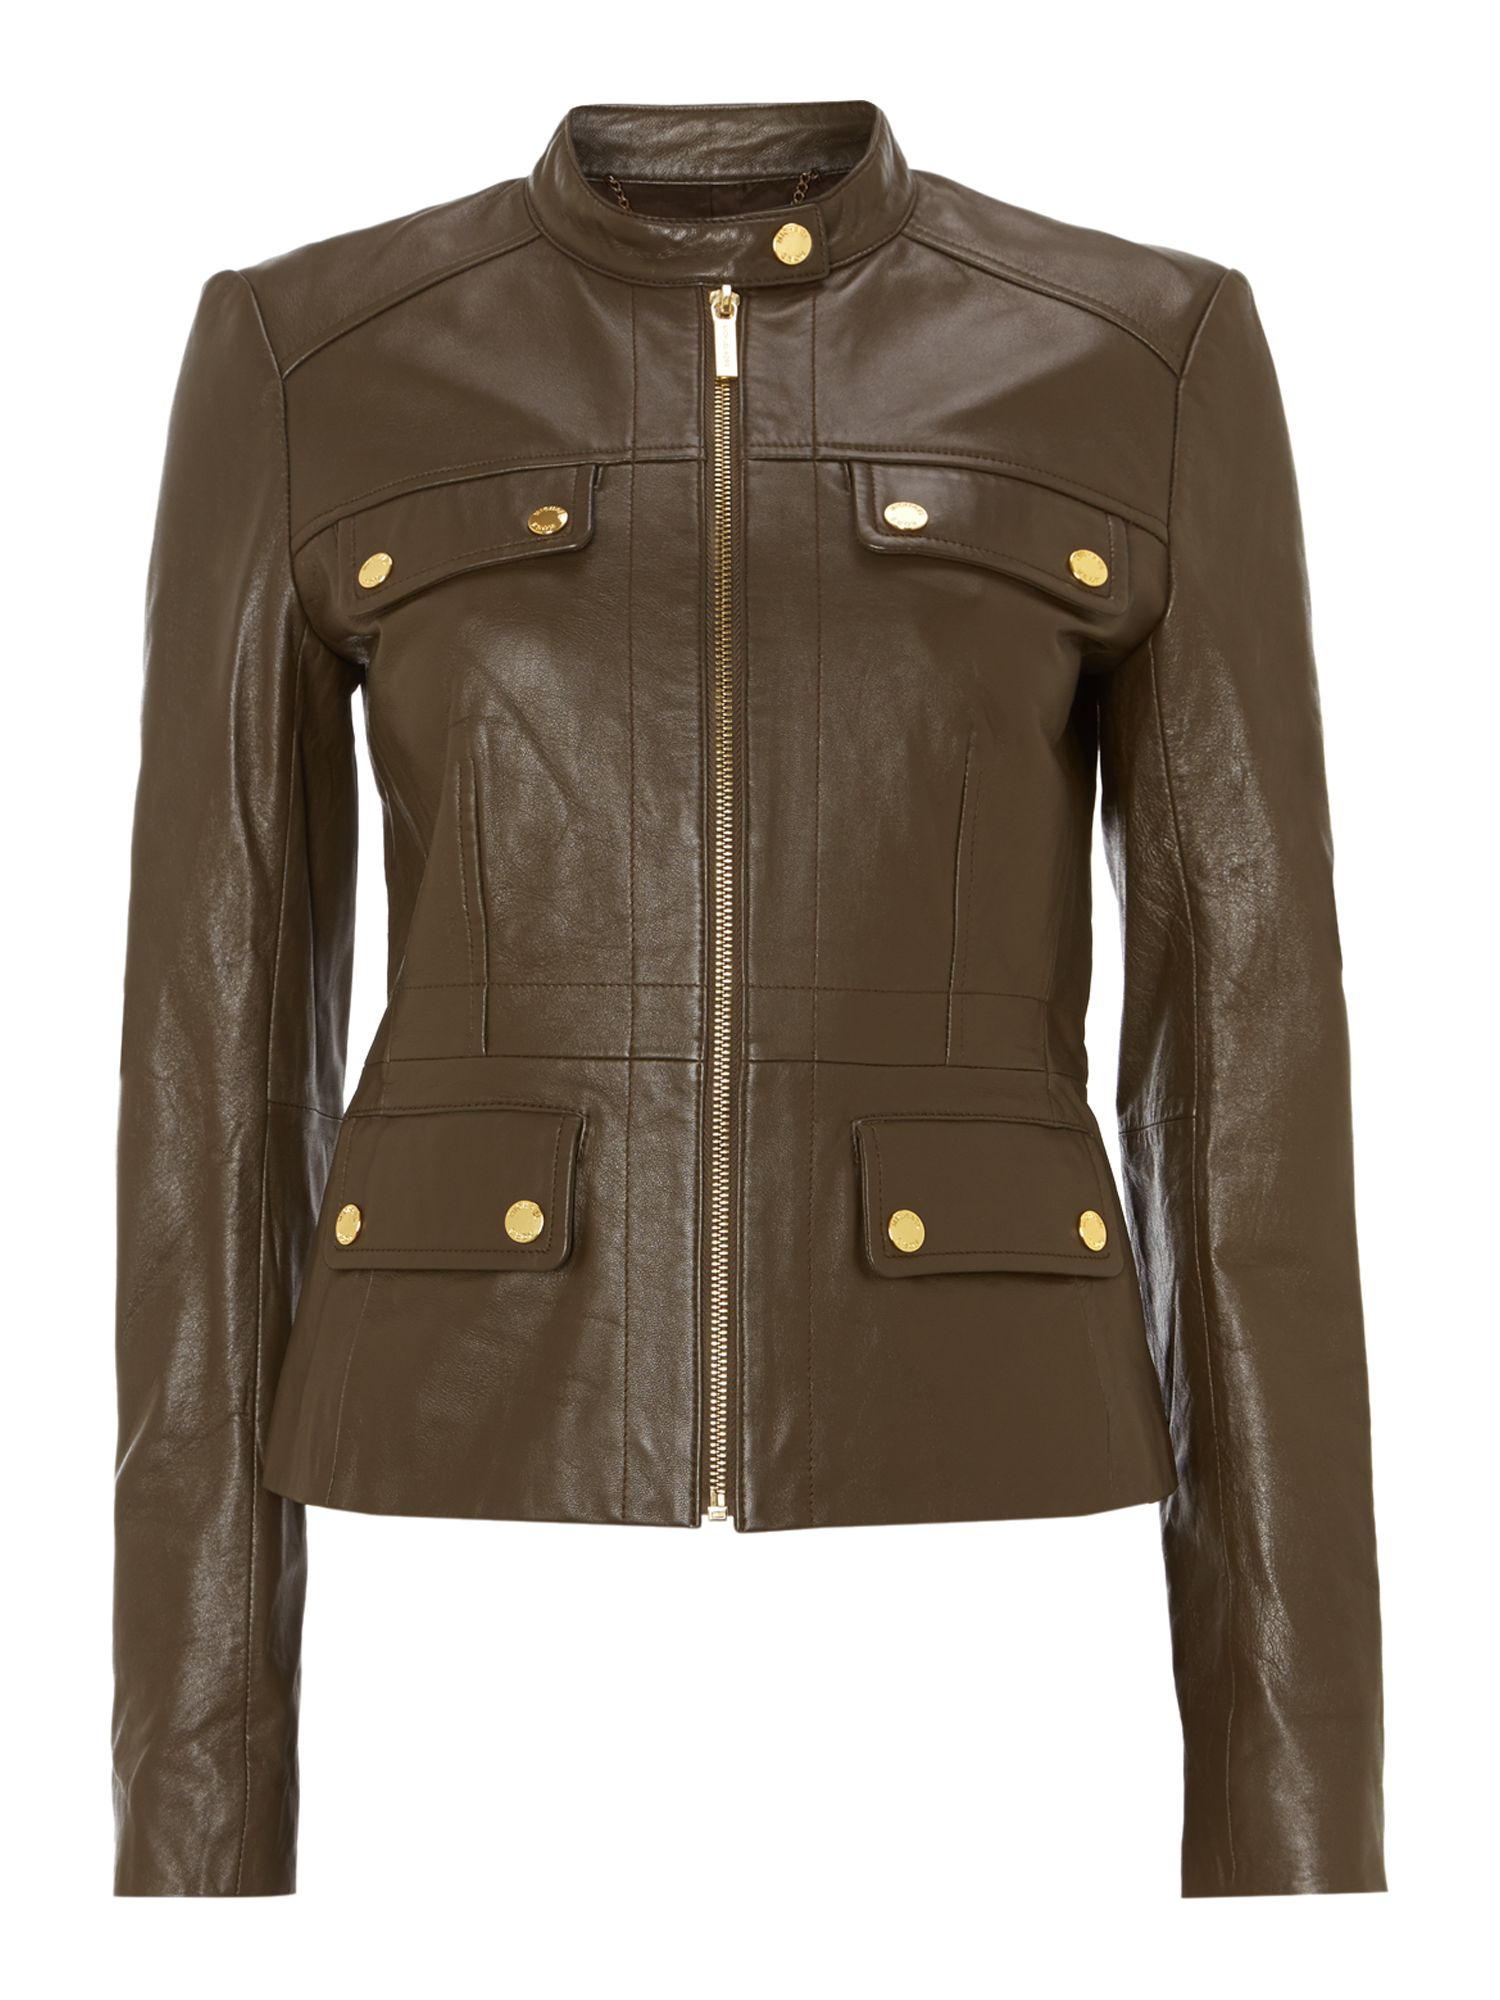 michael kors long sleeved waisted leather jacket in natural lyst. Black Bedroom Furniture Sets. Home Design Ideas